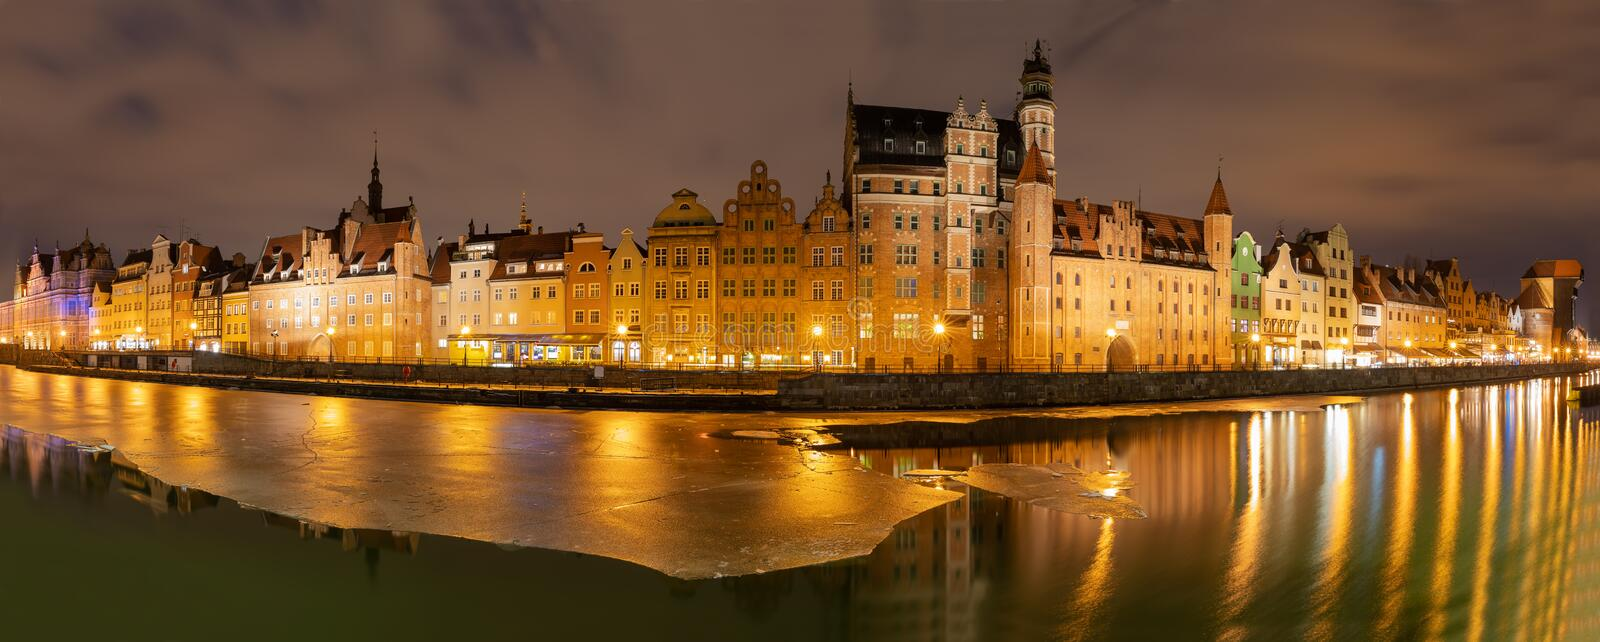 Gdansk evening panorama with medieval gates and Old Town facades on the bank of the Motlawa river.  stock photos